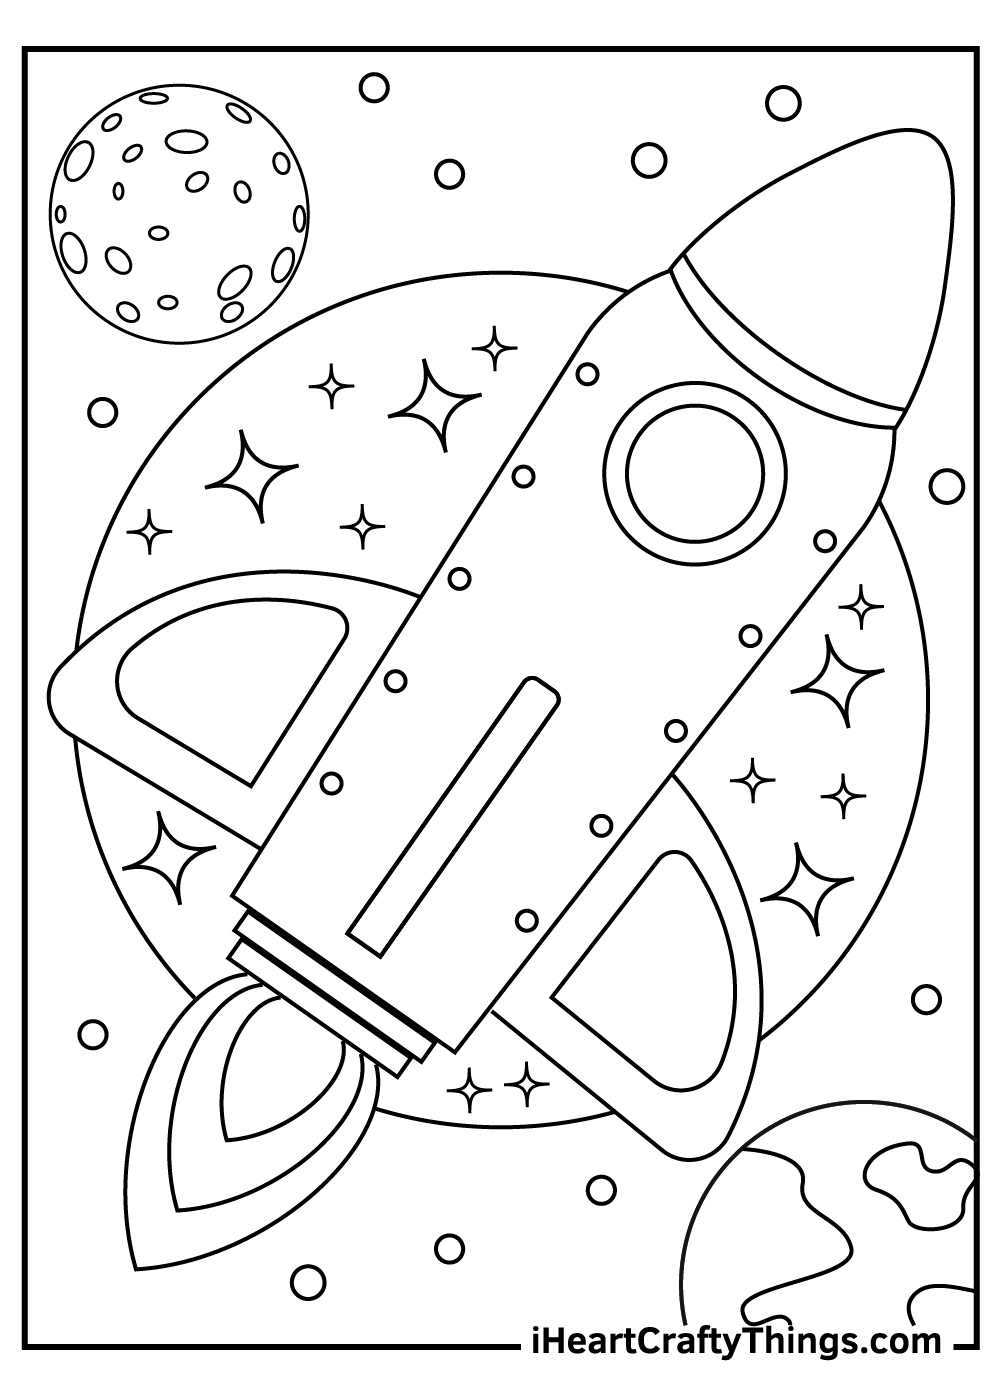 outer space coloring updated marker with eraser muffin man art projects teacher school coloring pages Space Coloring Page